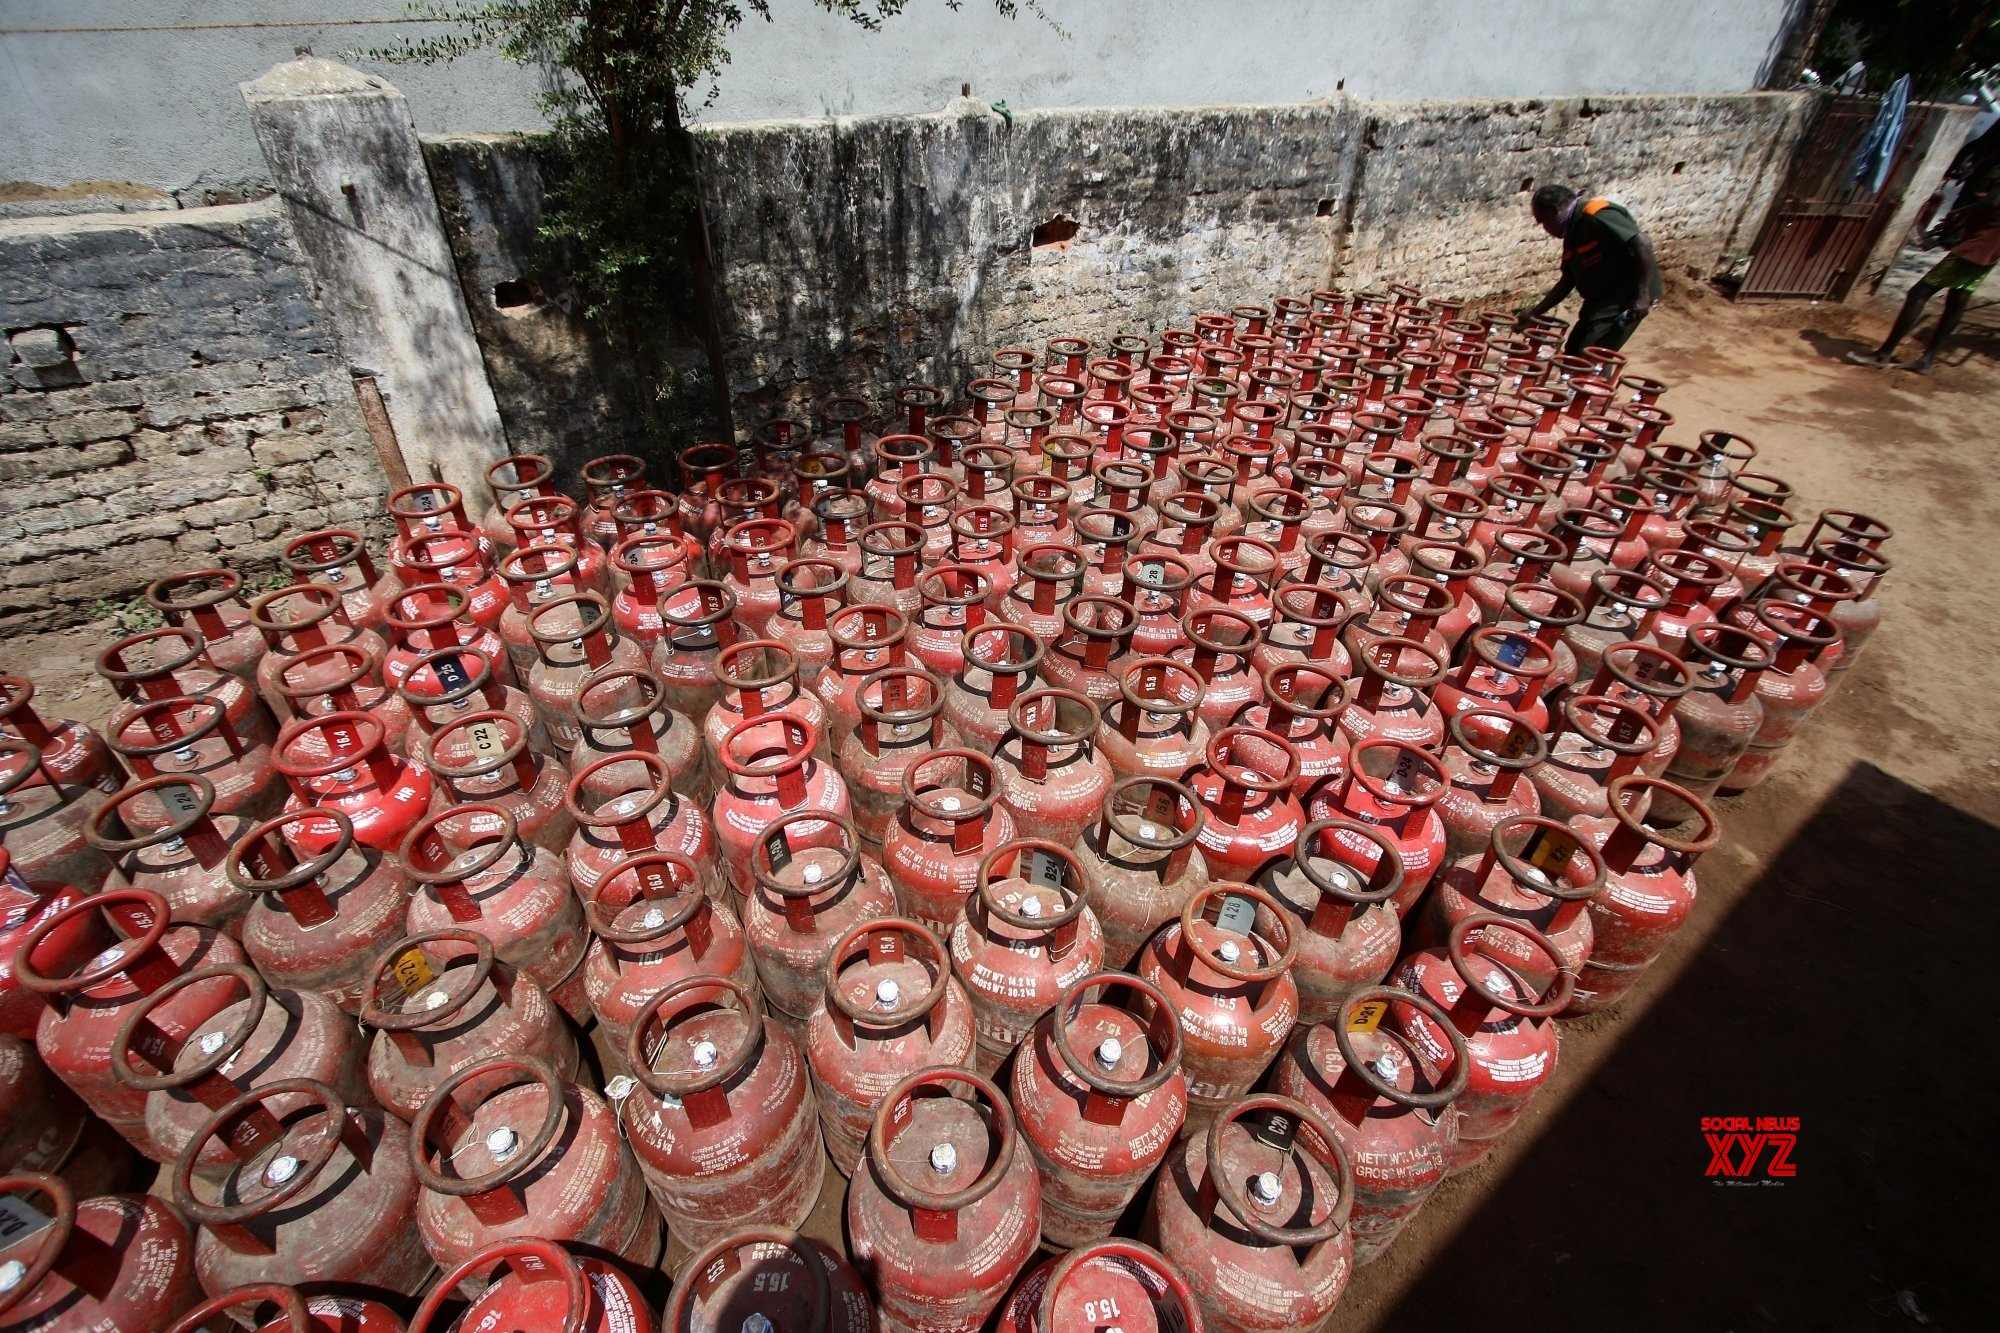 Chennai: LPG Gas cylinders at a godown on Day 2 of 21 - day nationwide lockdown #Gallery